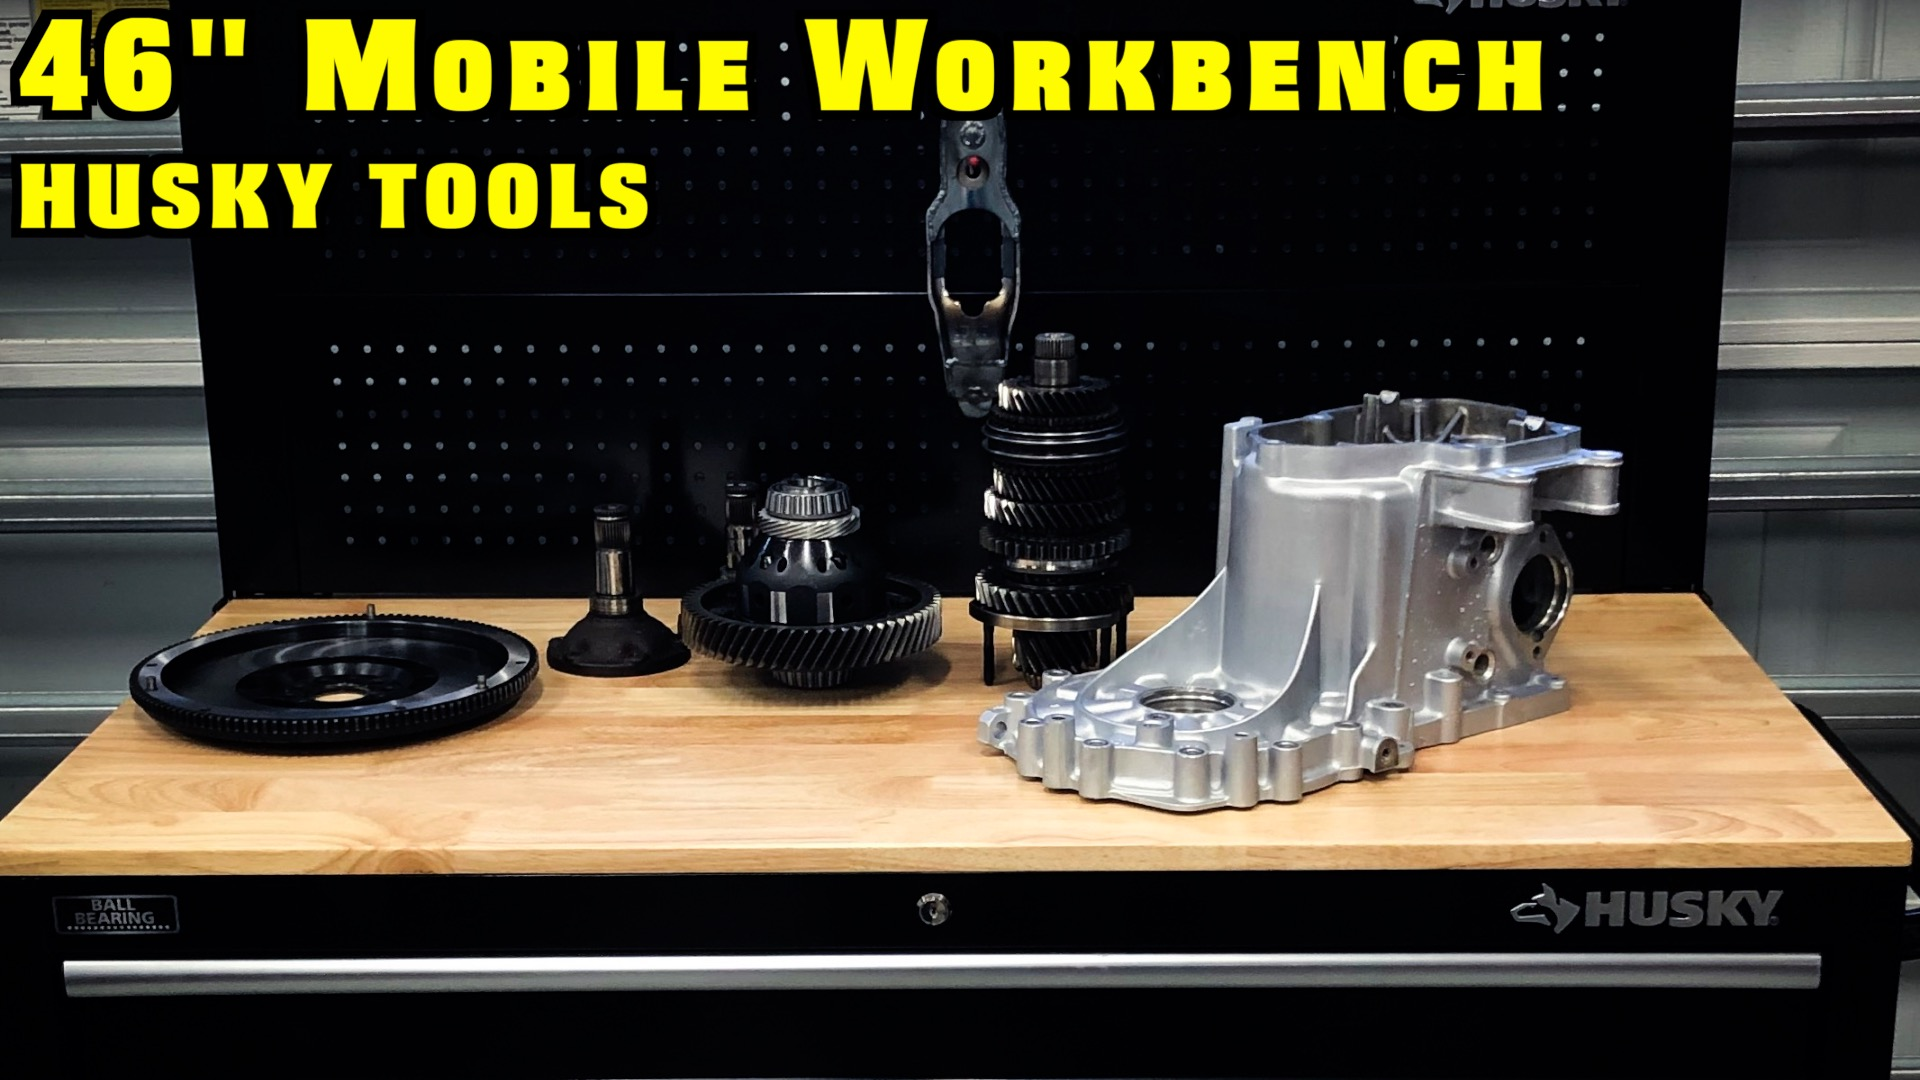 Husky Mobile Workbench